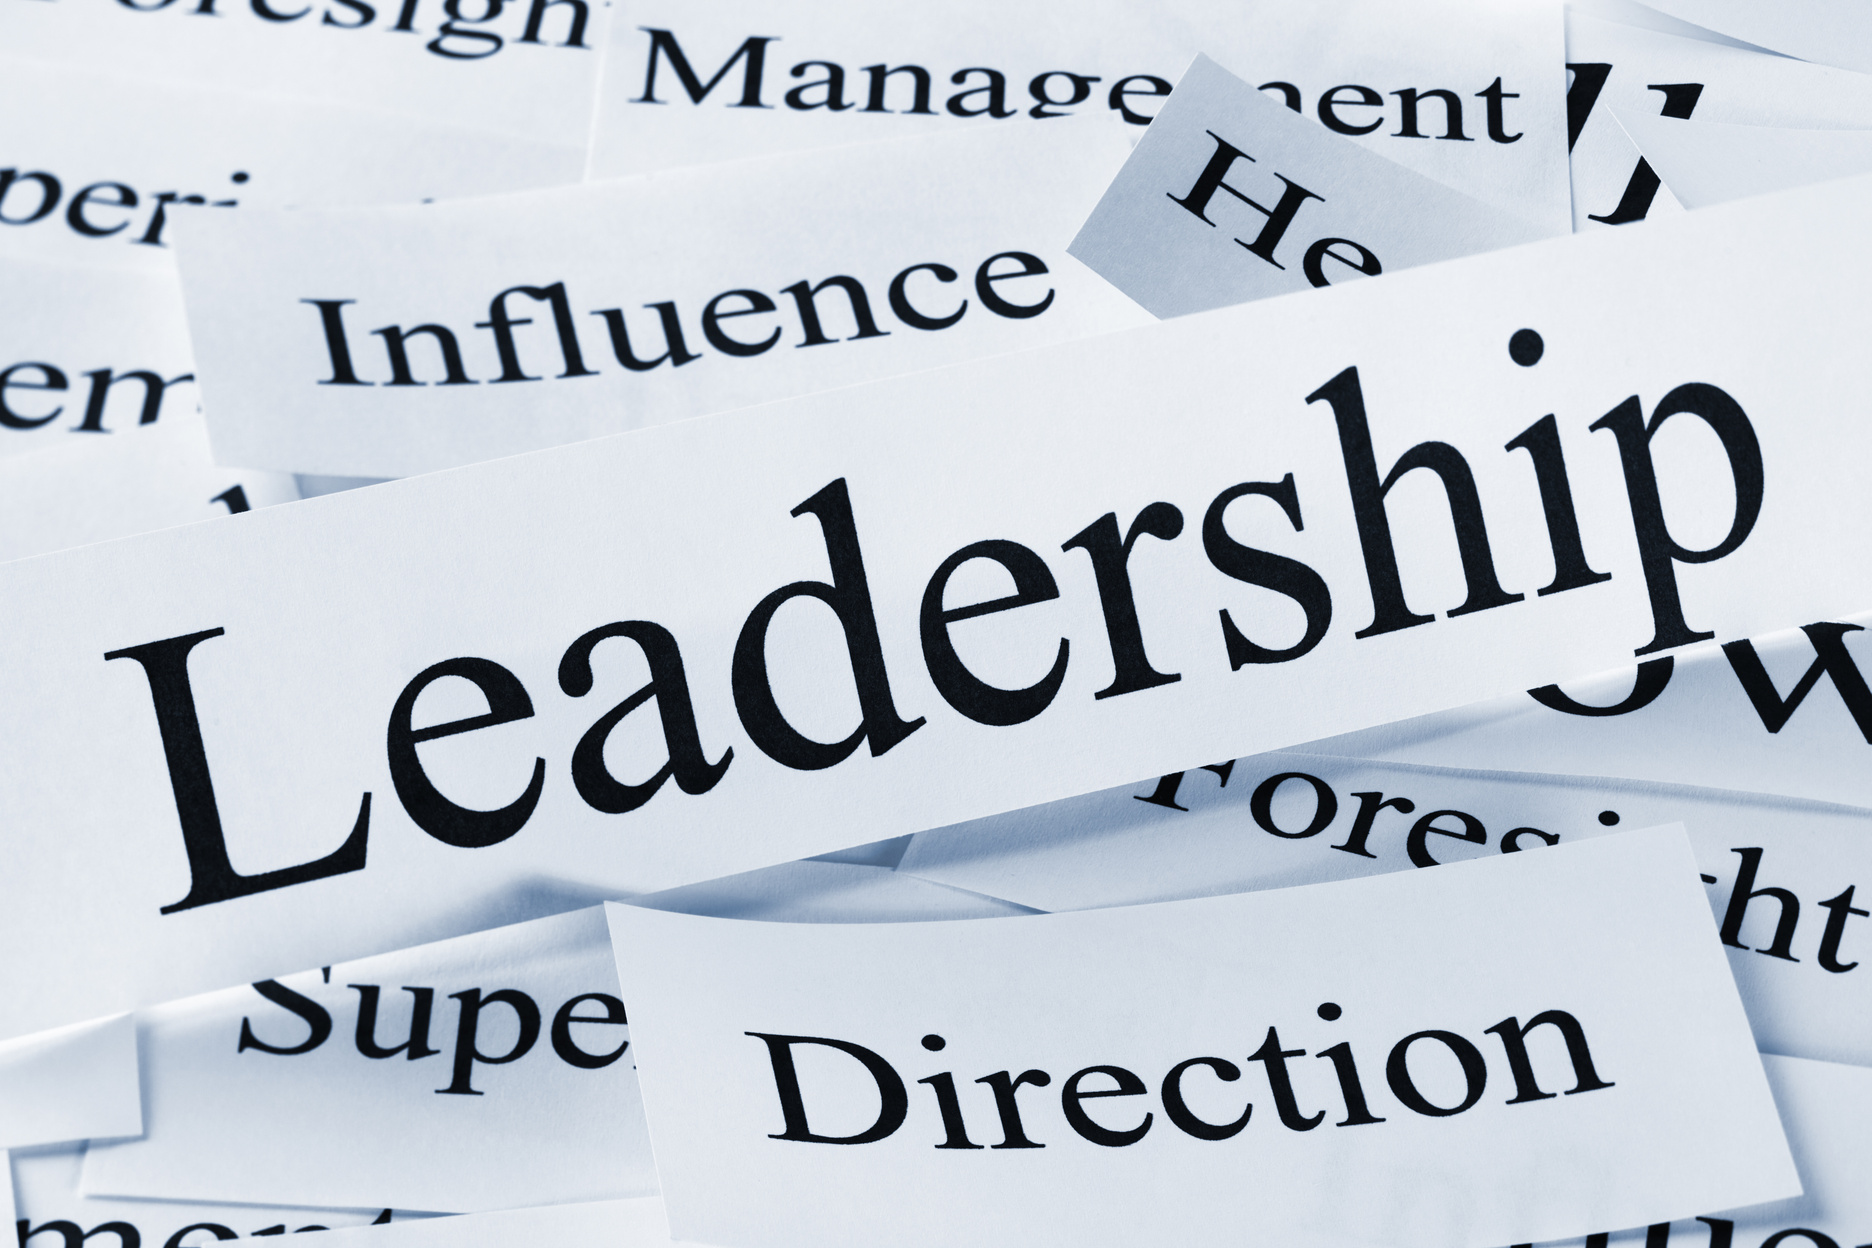 Significance of Leadership And Leadership Styles Top-2016-Leadership-Trends-2